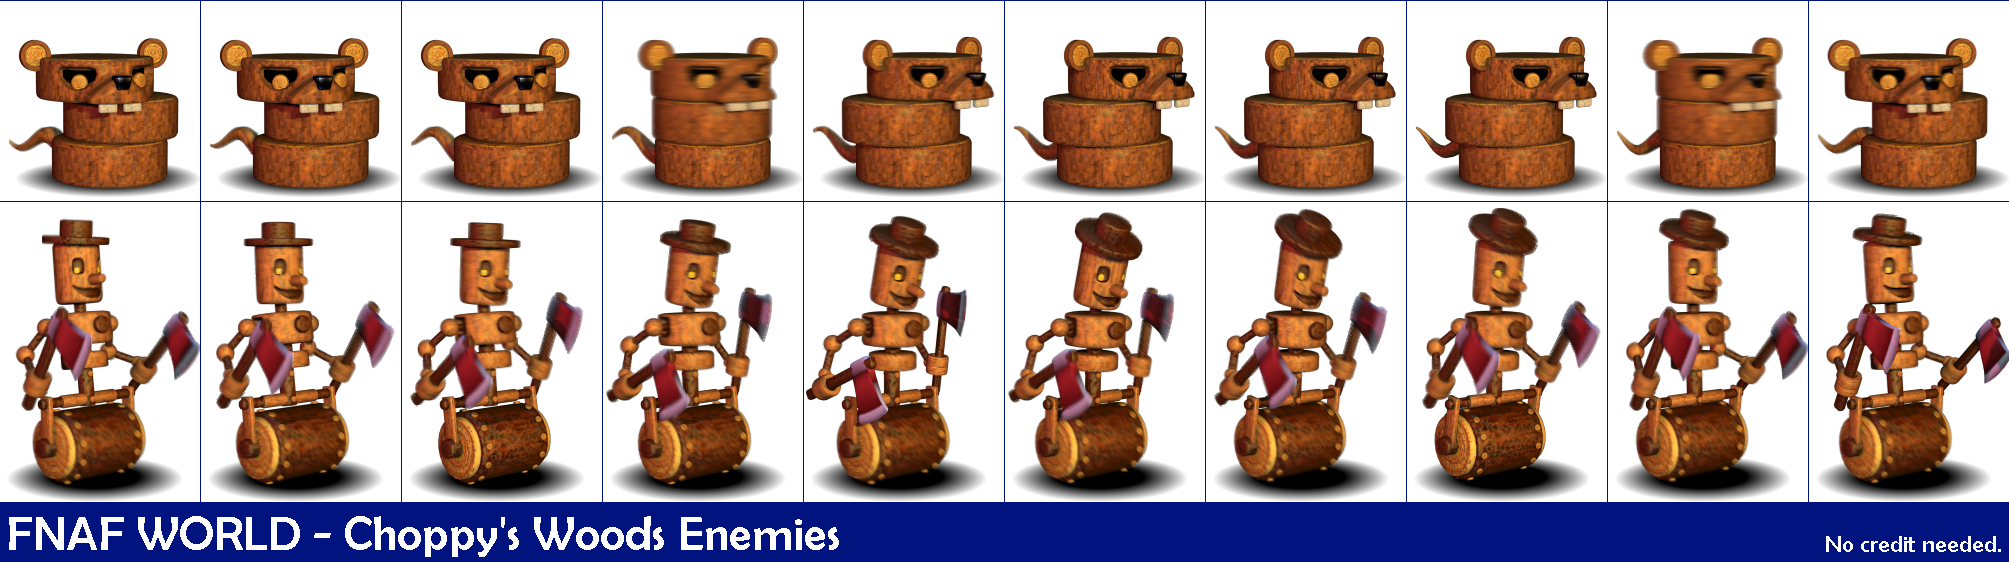 Pc Computer Fnaf World Choppy S Woods Enemies The